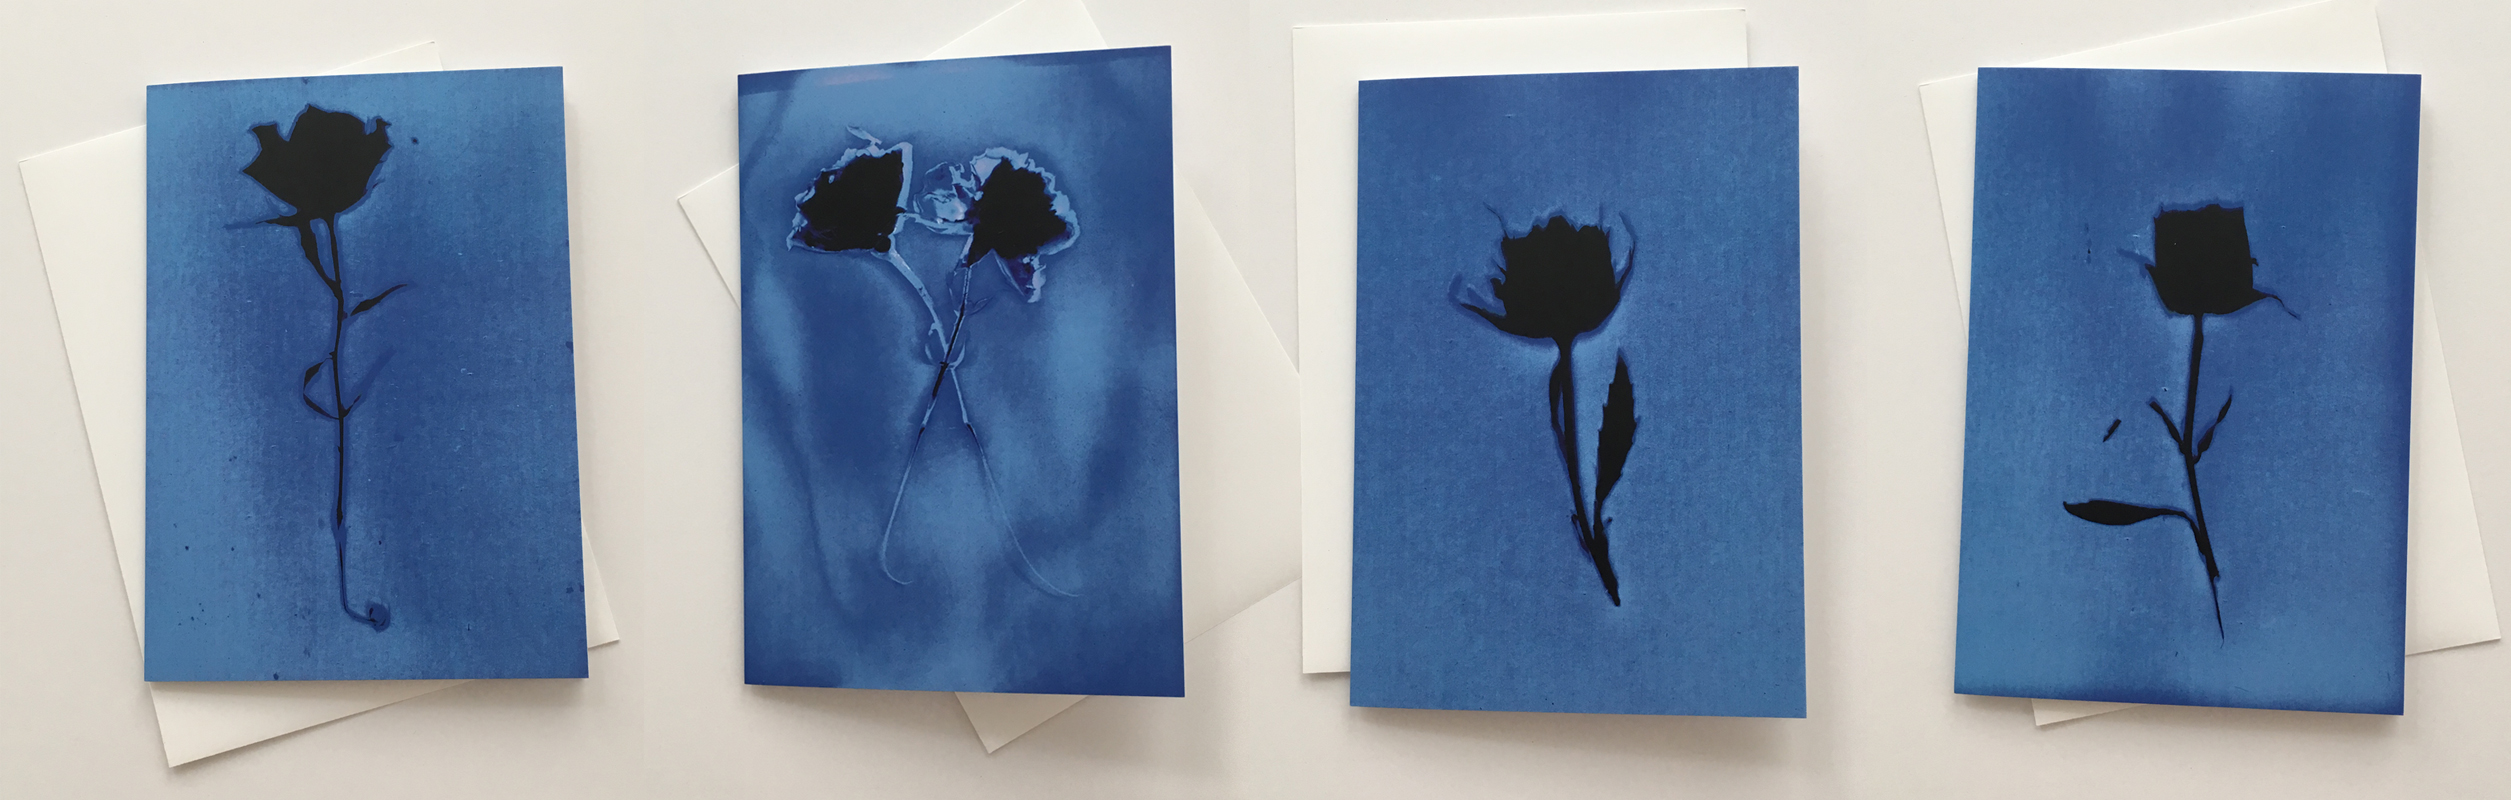 Four Blank Blue For You Cards from the series In My Courtyard with envelopes5.75 x 4.25 inches1000.0064****$25.00 plus Shipping and Handling